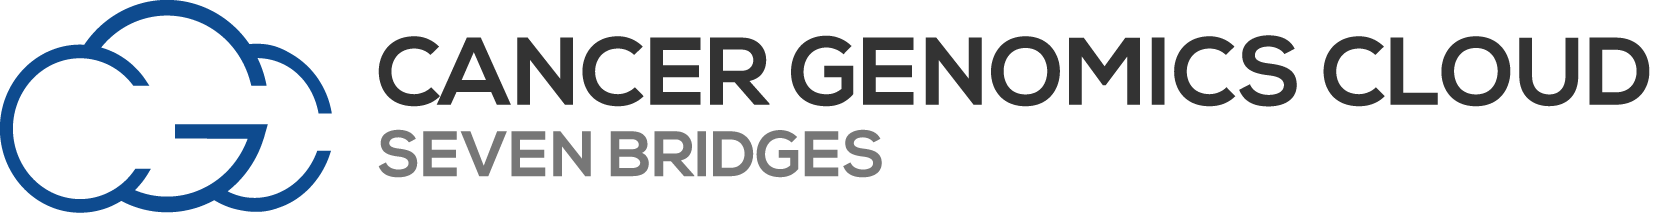 Seven Bridges Cancer Genomics Cloud